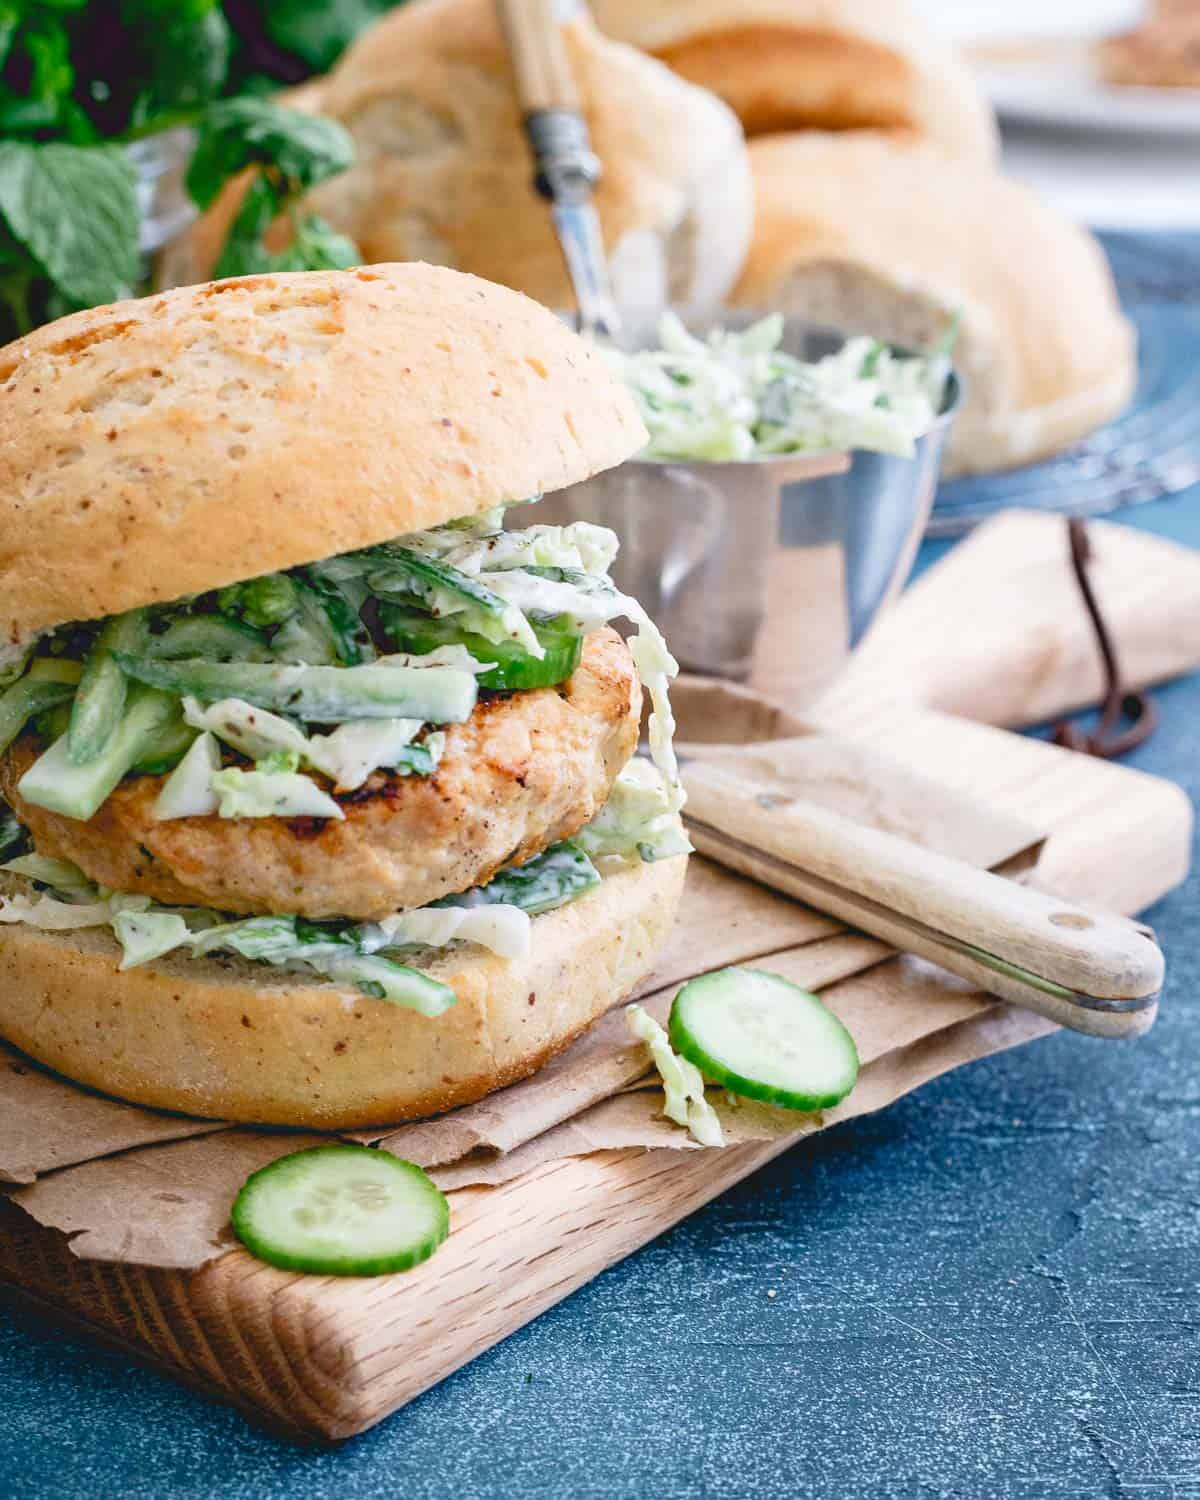 Try out these Indian chicken burgers for your next burger night. Simple, healthy, gluten-free and a great alternative to beef.